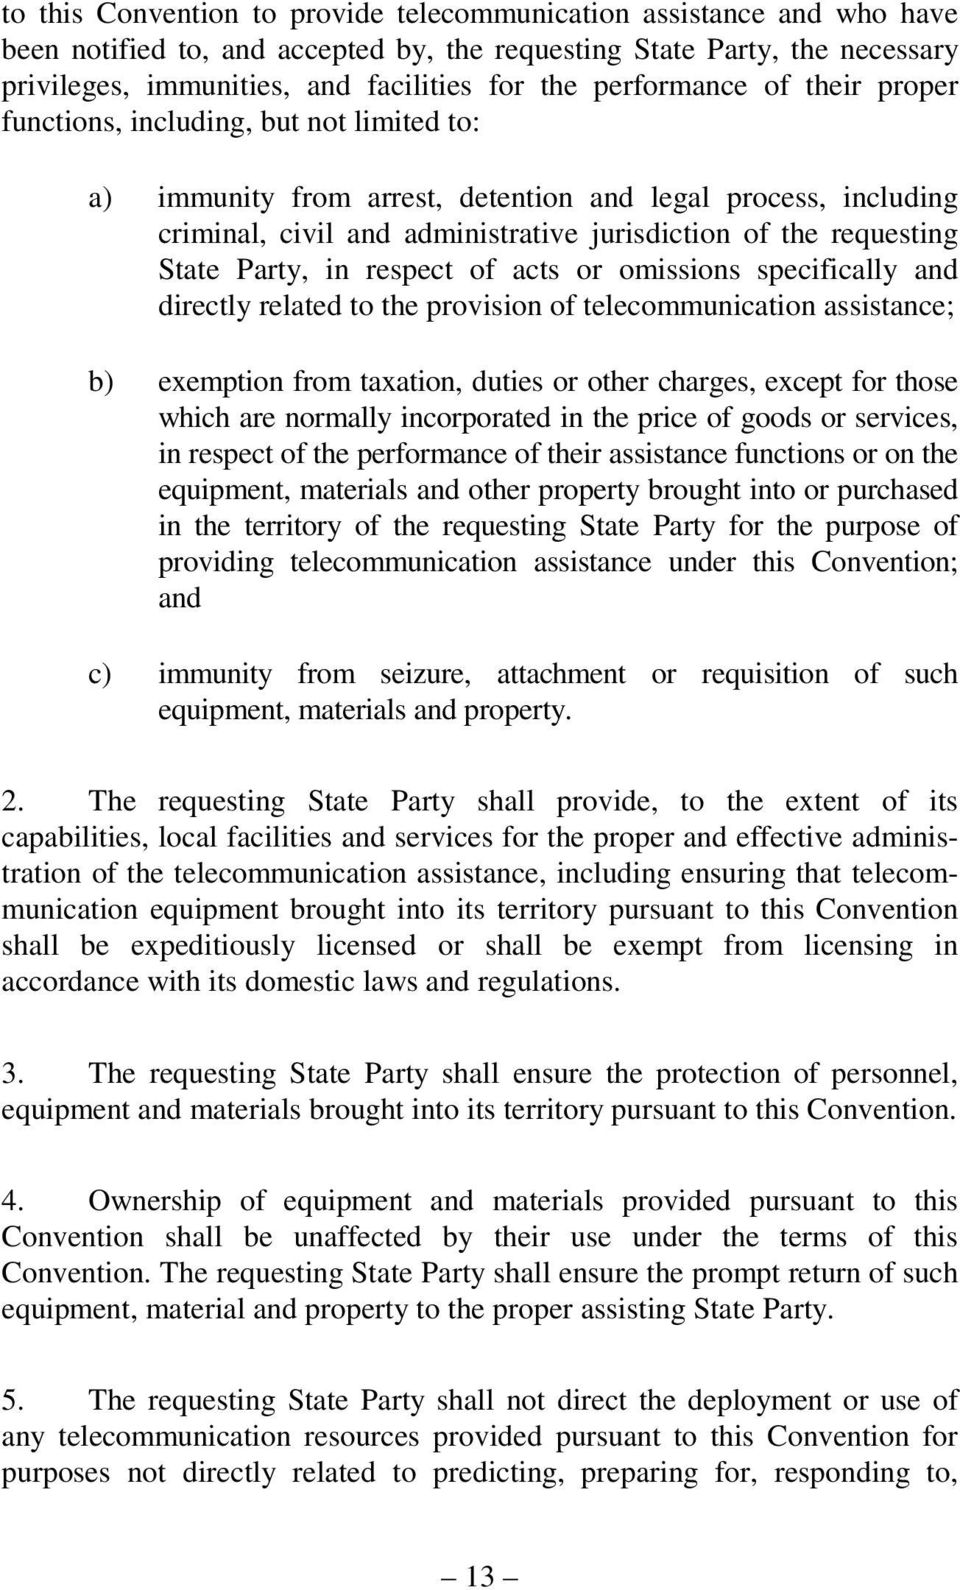 State Party, in respect of acts or omissions specifically and directly related to the provision of telecommunication assistance; b) exemption from taxation, duties or other charges, except for those